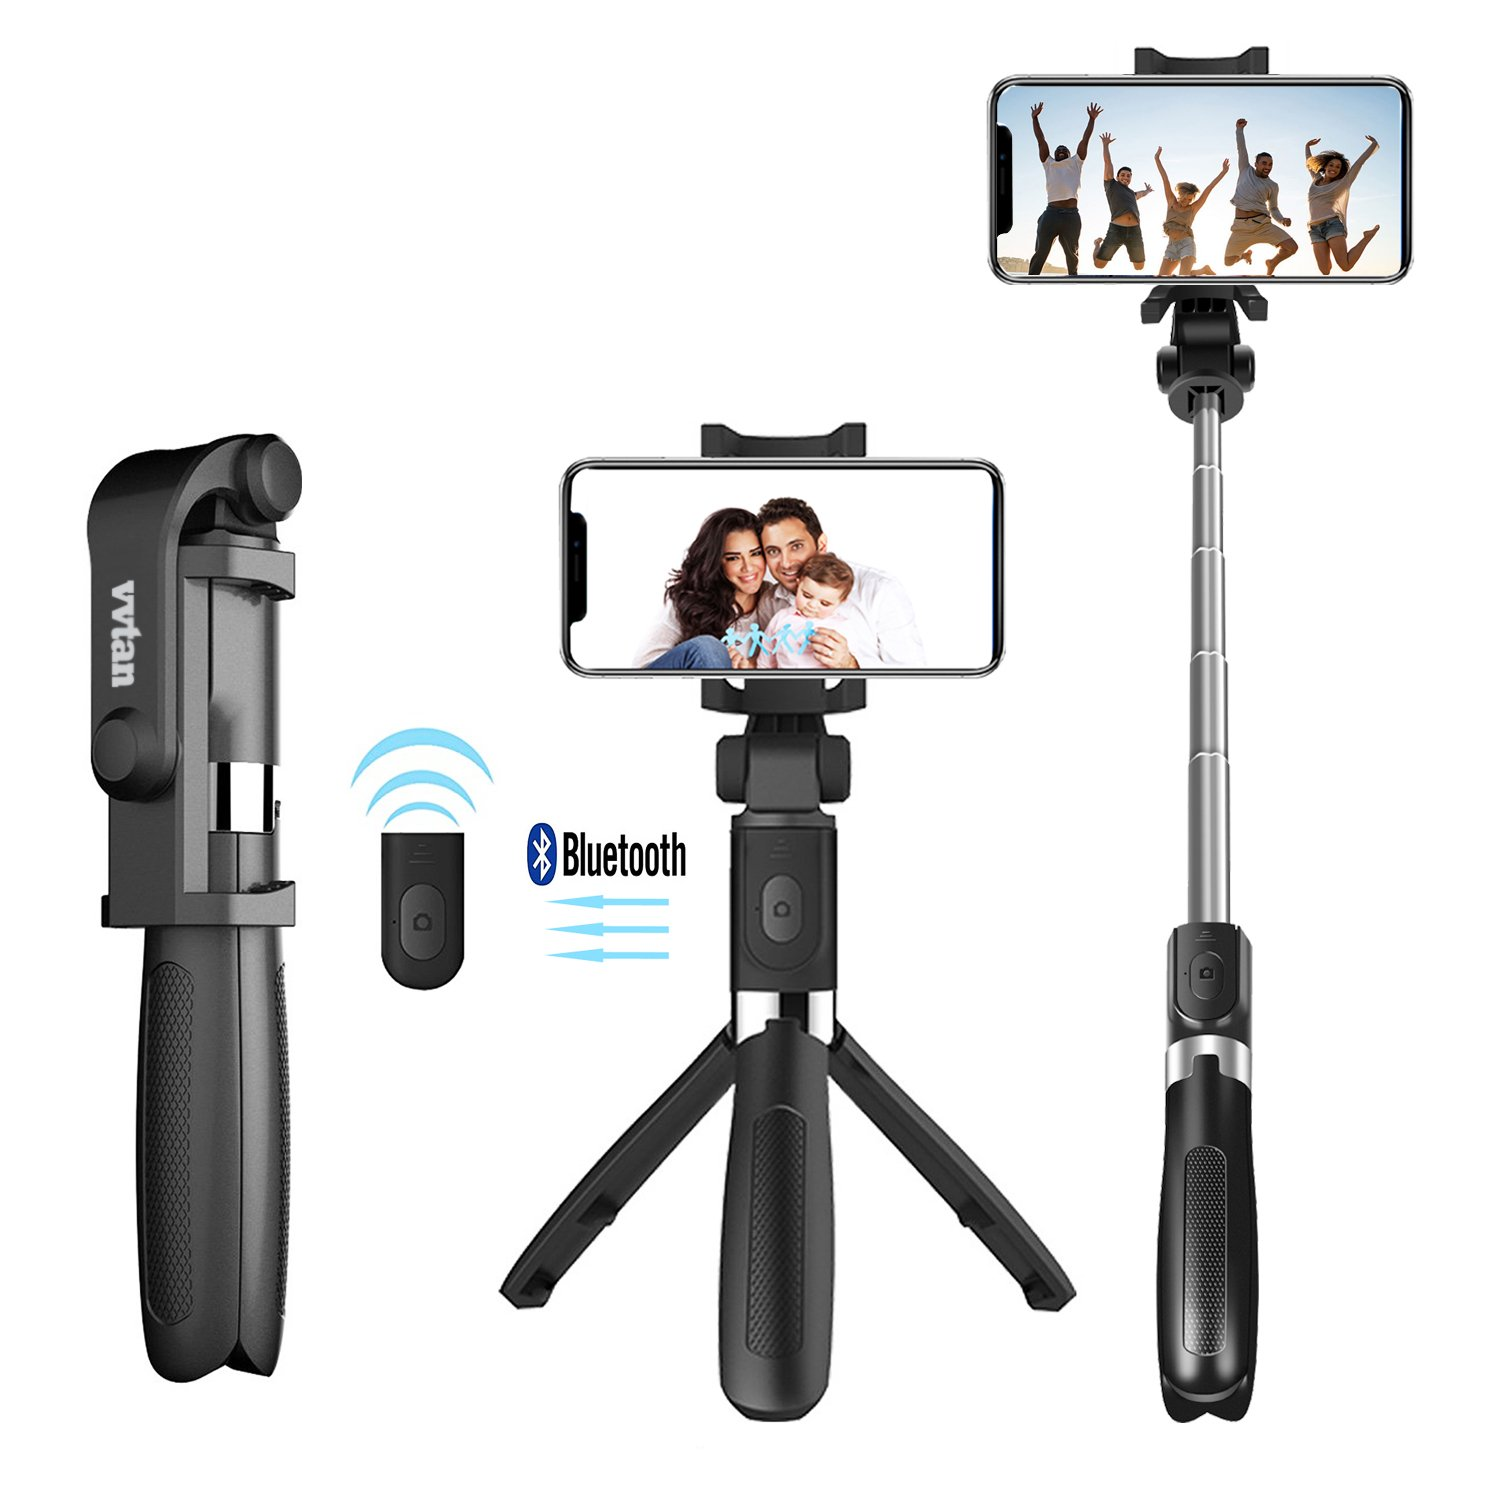 Portable Lightweight Selfie Stick, Bluetooth Selfie Stick Tripod with Removable Wireless Remote Shutter, Extendable Mini Handheld Selfie Stick for iPhone, Android Samsung,Huawei,LG,More